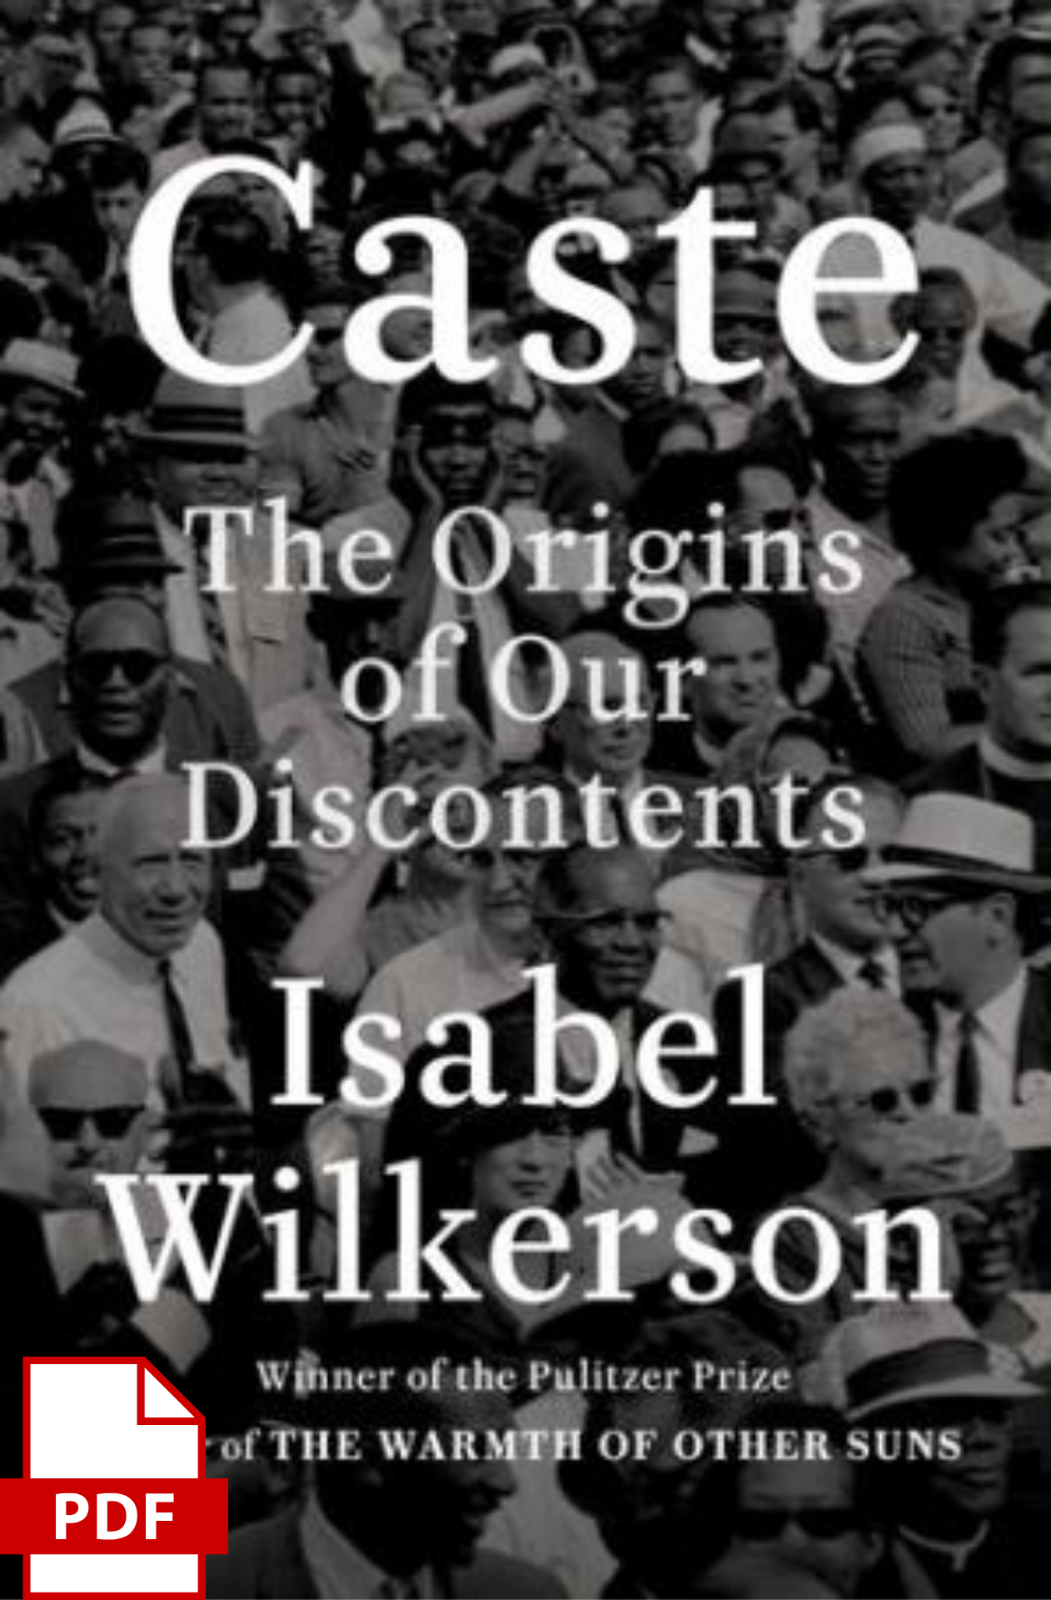 Caste The Origins Of Our Discontents By Isabel Wilkerson P.D.F, 2020  - $0.99